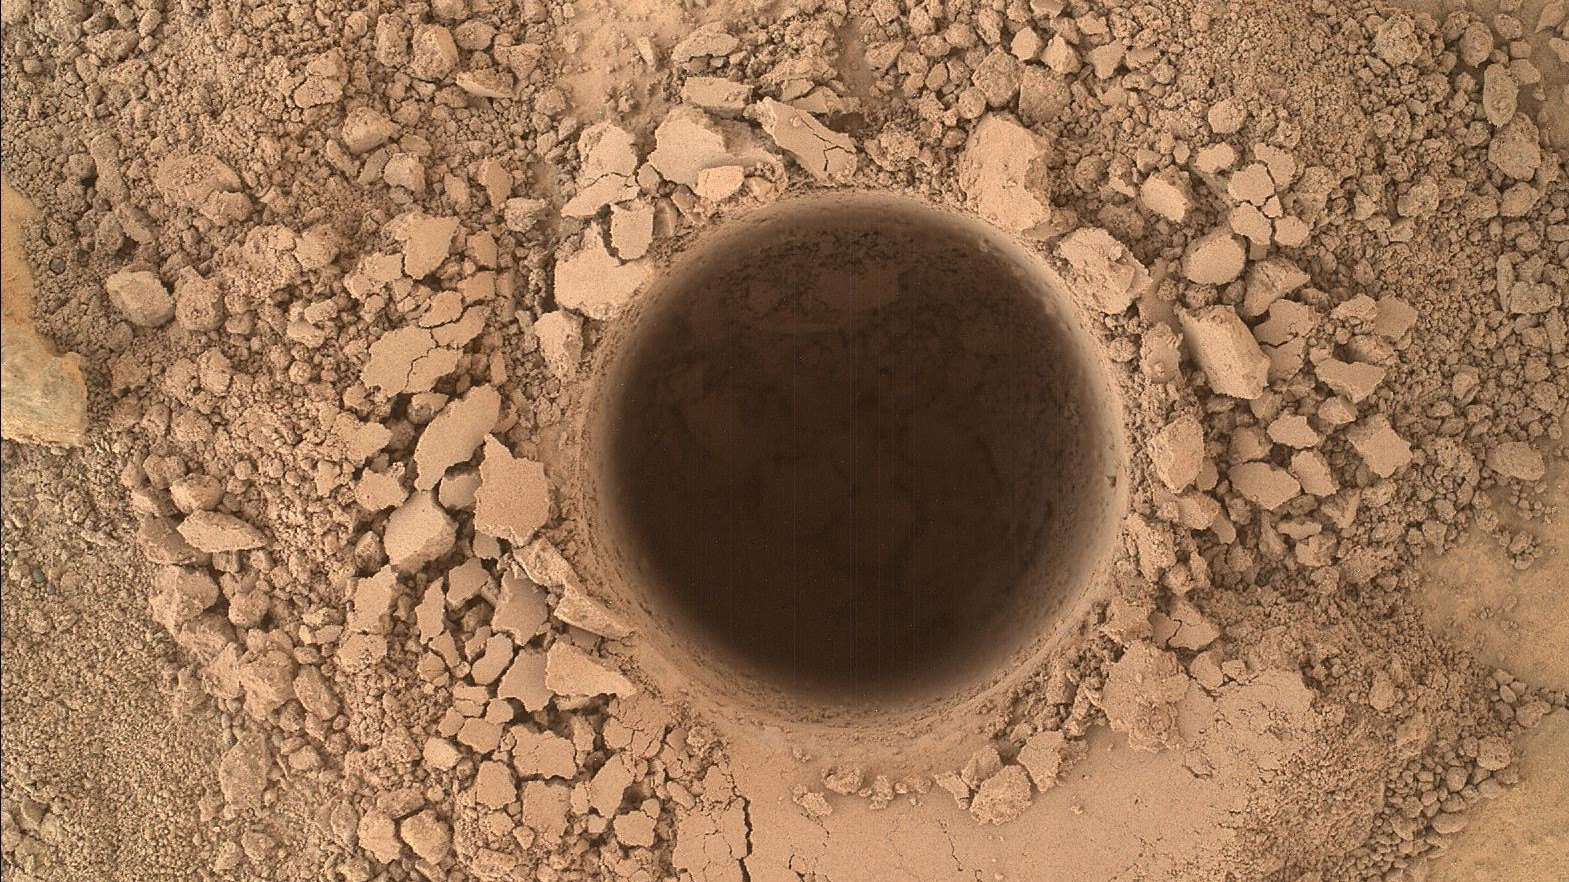 The Curiosity Rover Has Begun Drilling Into Its Most Interesting Target Yet